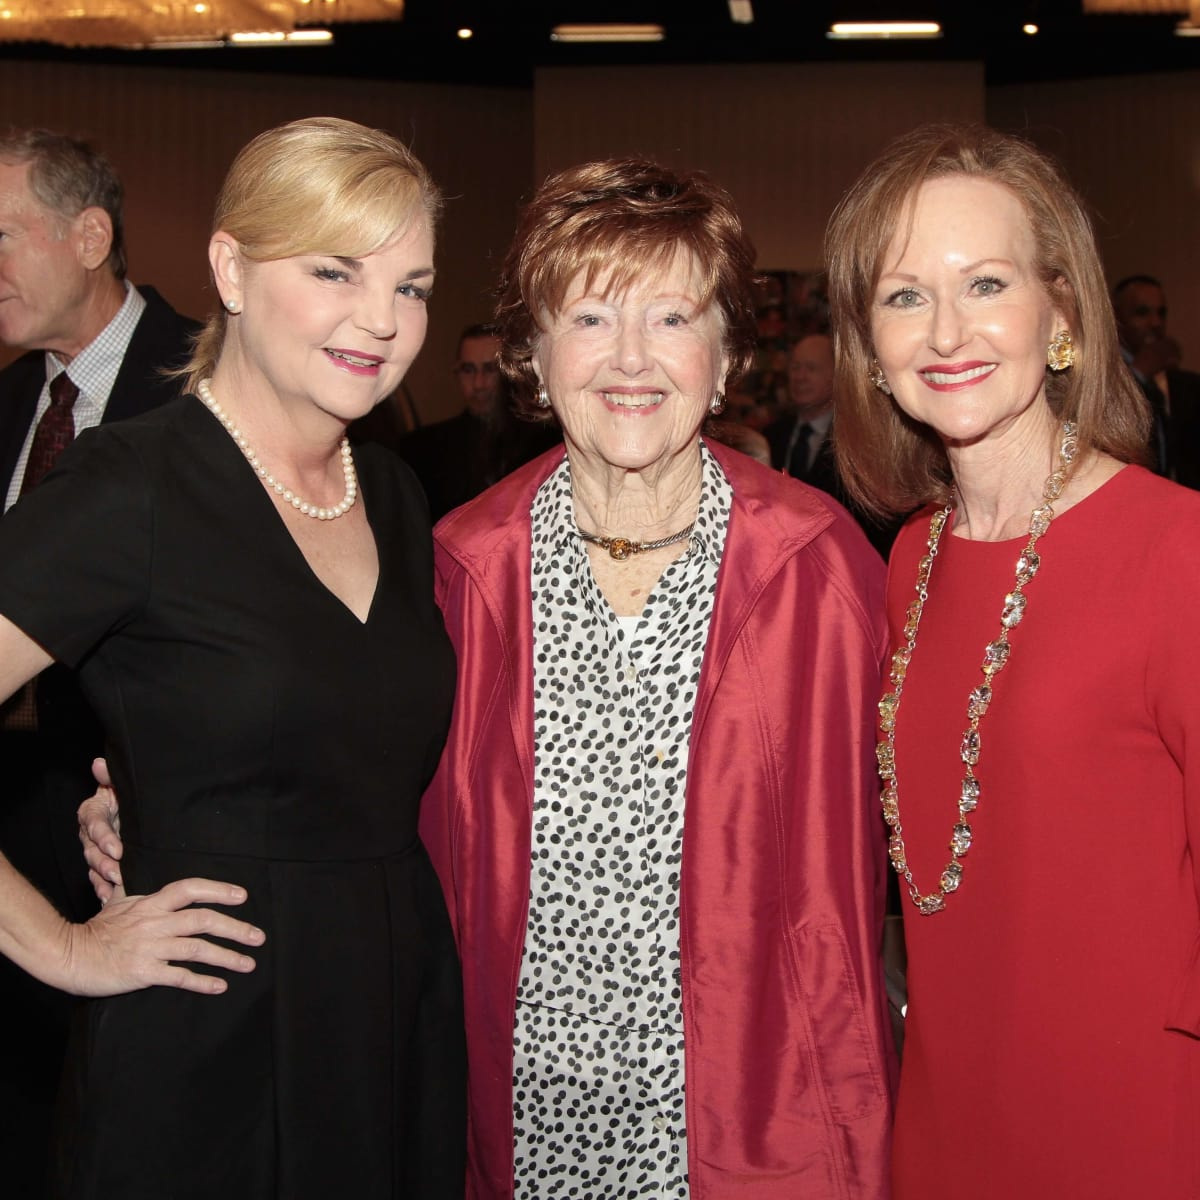 Houston Children's Charity 20th anniversary, 9/16  Kim Padgett, Rosalyn Caplan, Carol Sawyer